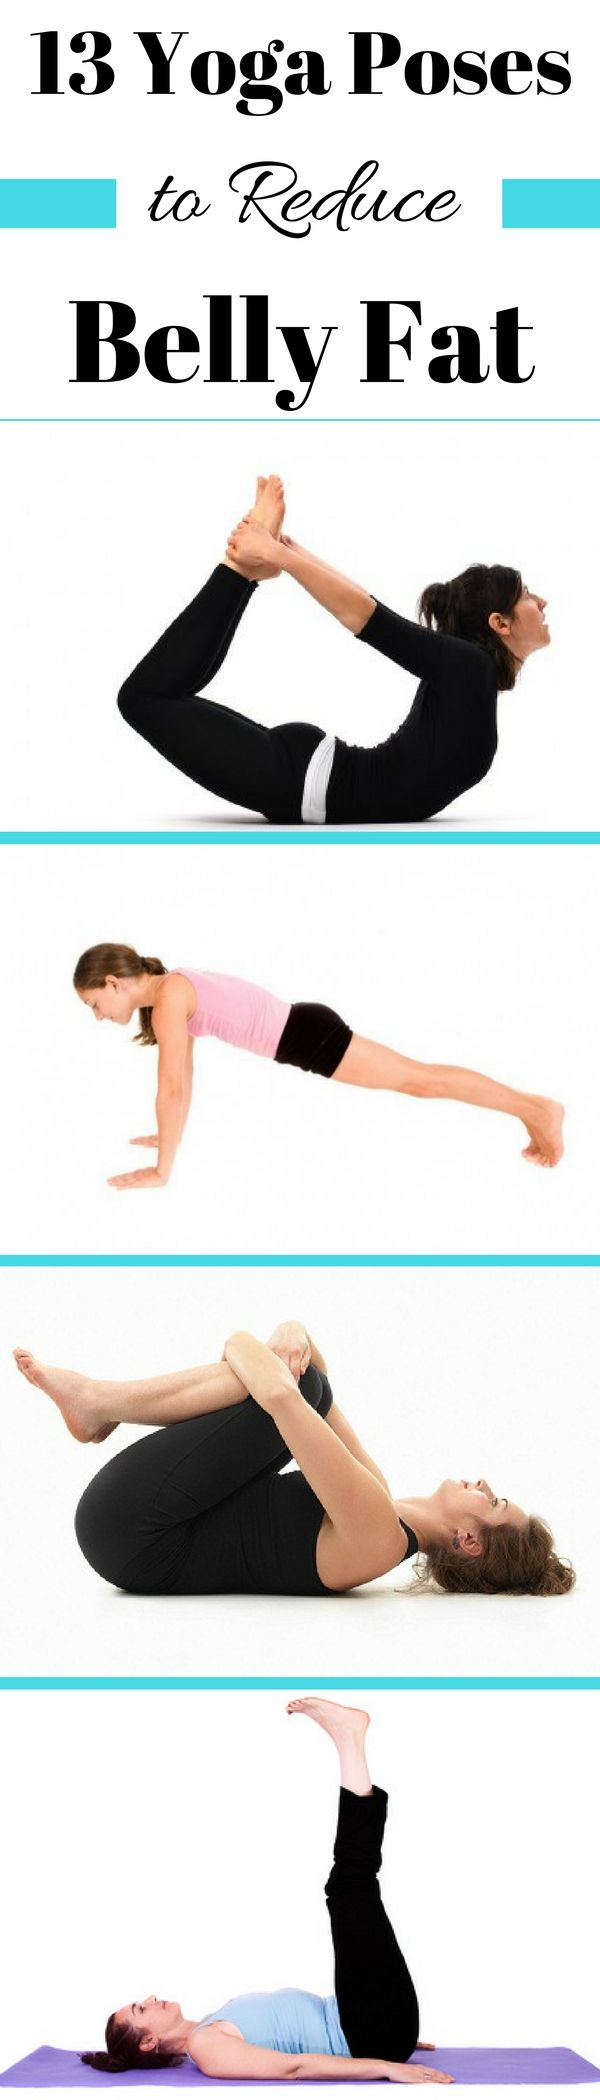 Here are 13 of the best yoga poses to help you lean up... http://blog.bendlessly.com/yoga-poses-to-reduce-belly-fat/